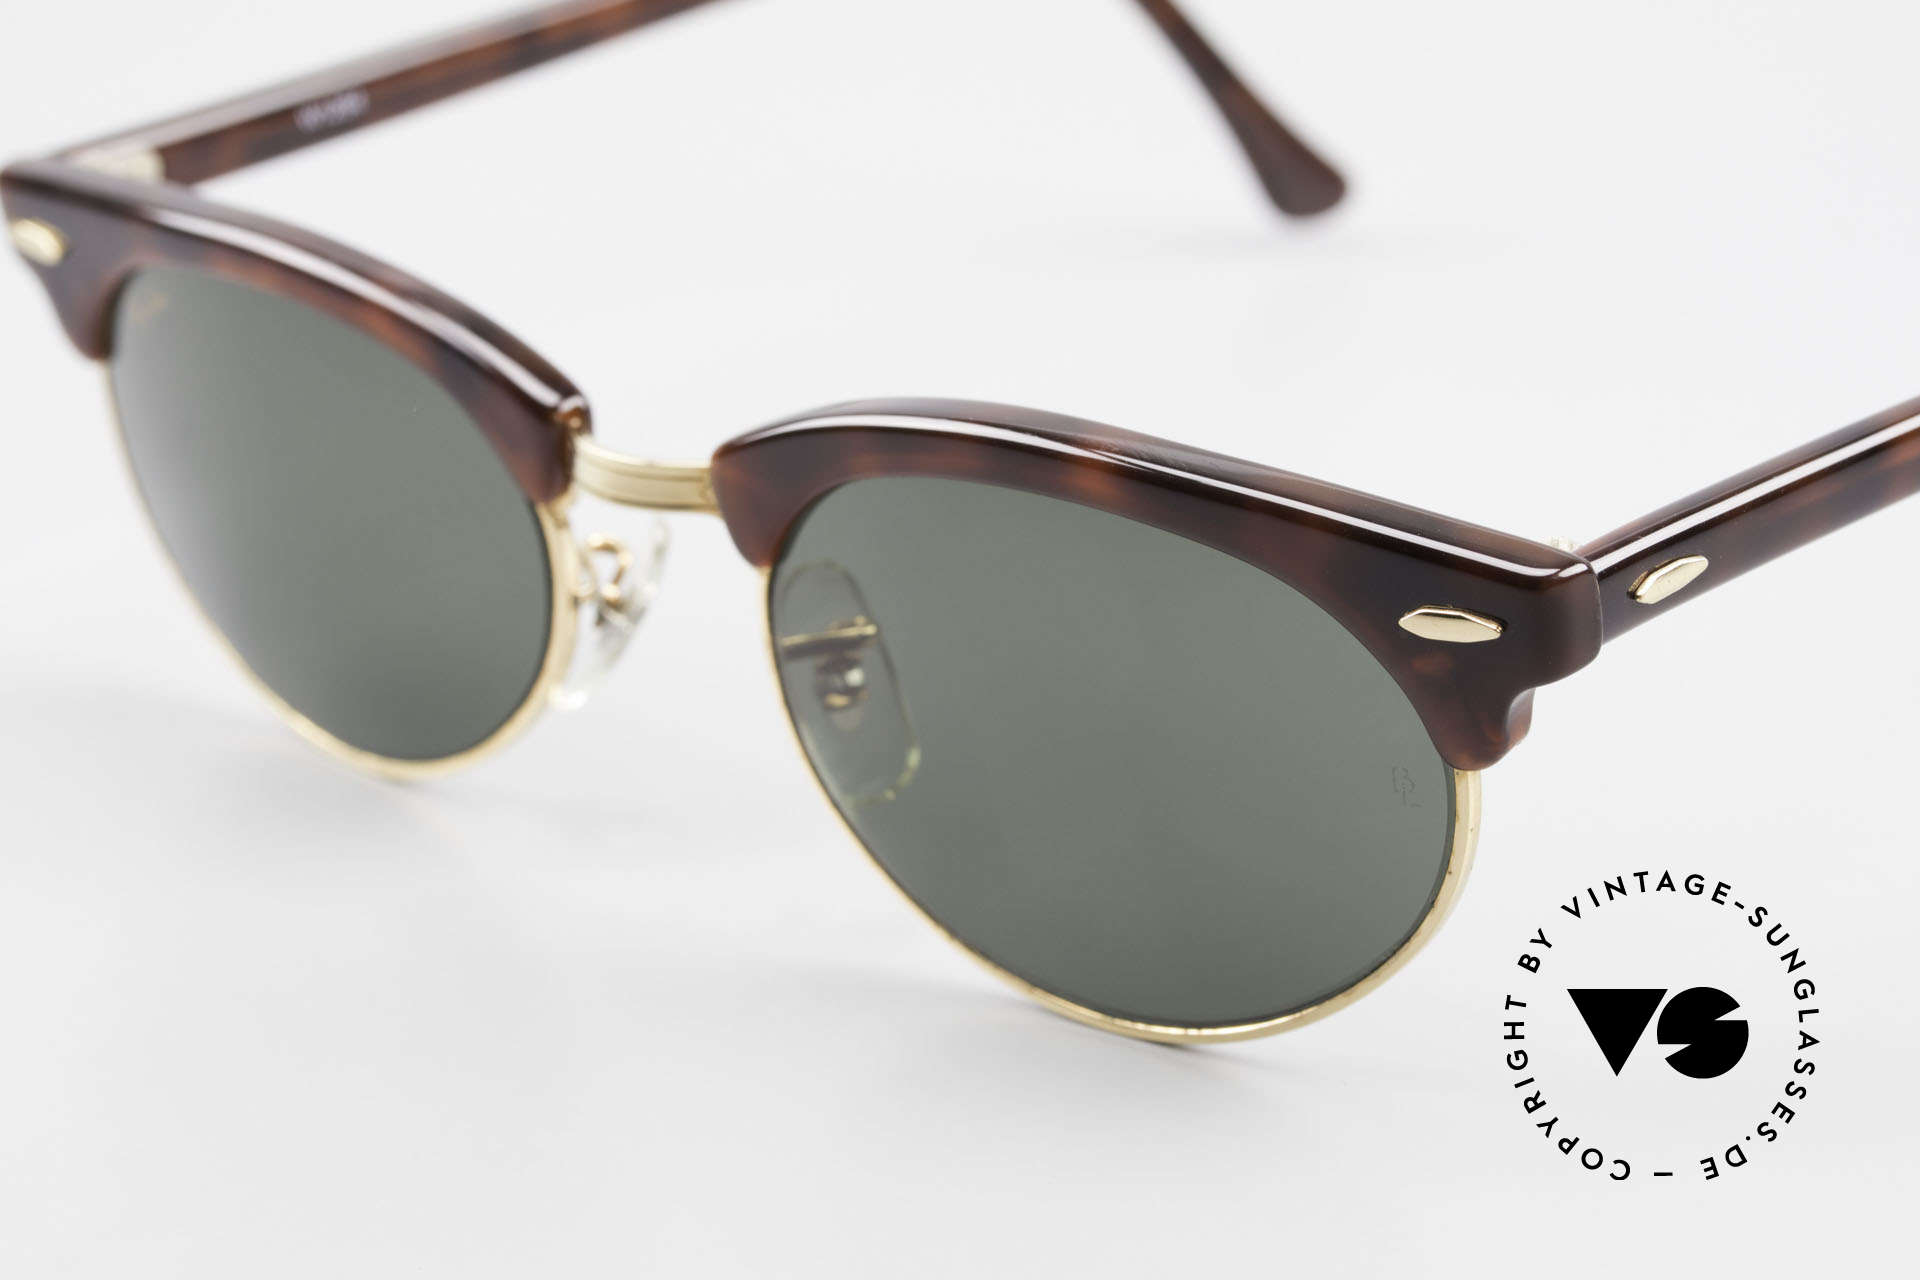 Ray Ban Clubmaster Oval 80's Bausch & Lomb Original, NO RETRO sunglasses, but a 30 years old RARITY, Made for Men and Women